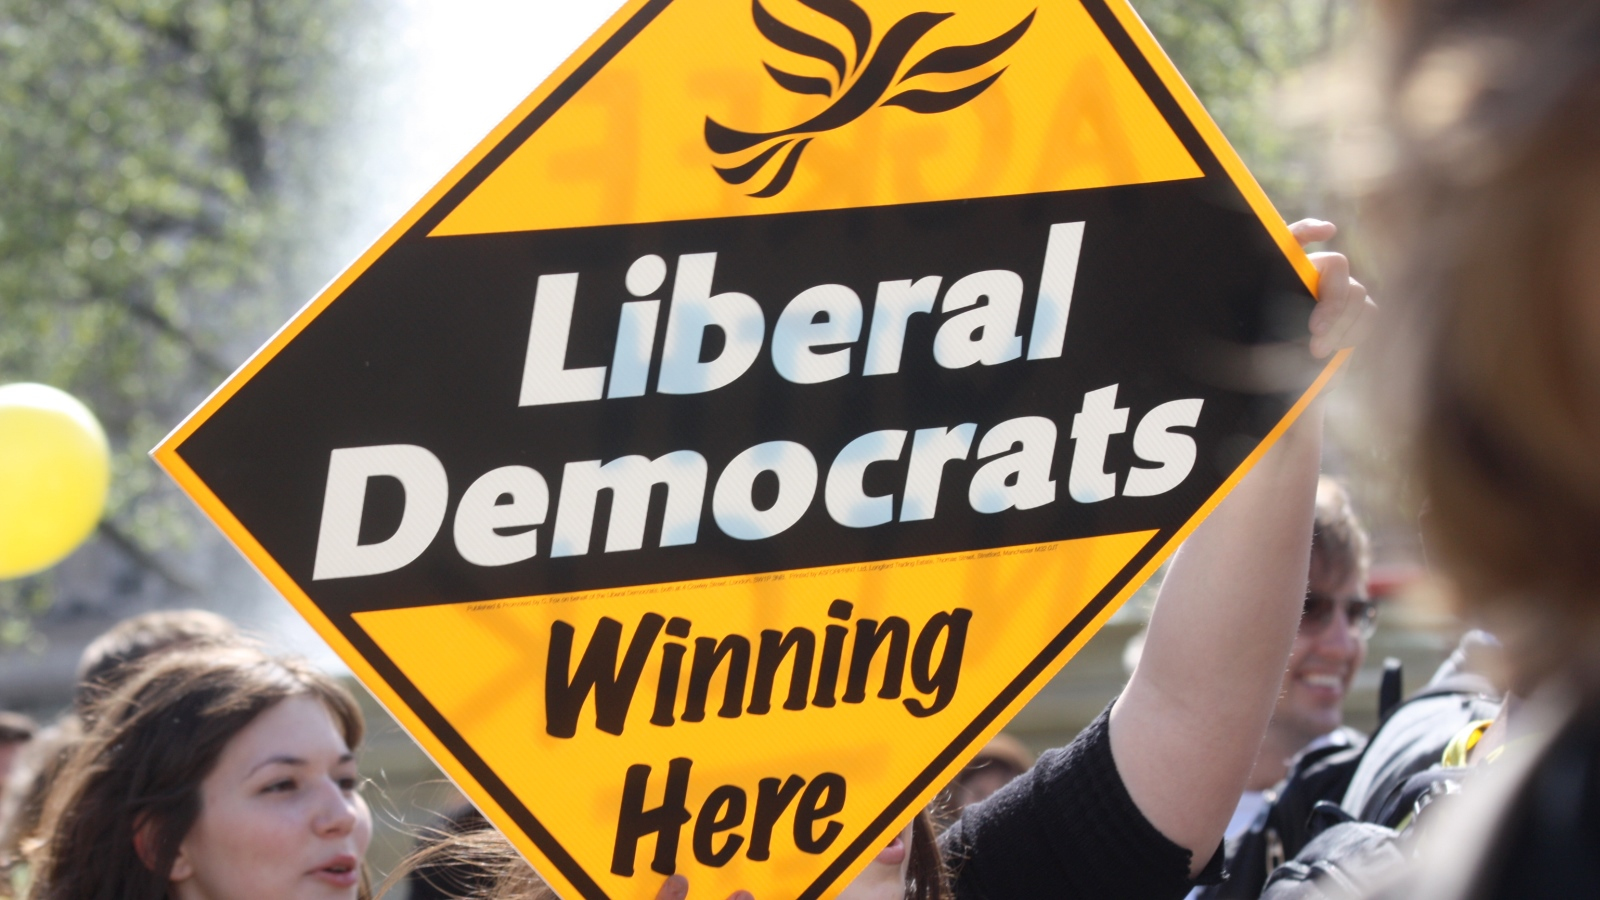 Welsh Liberal Democrats Volunteer Awards 2019